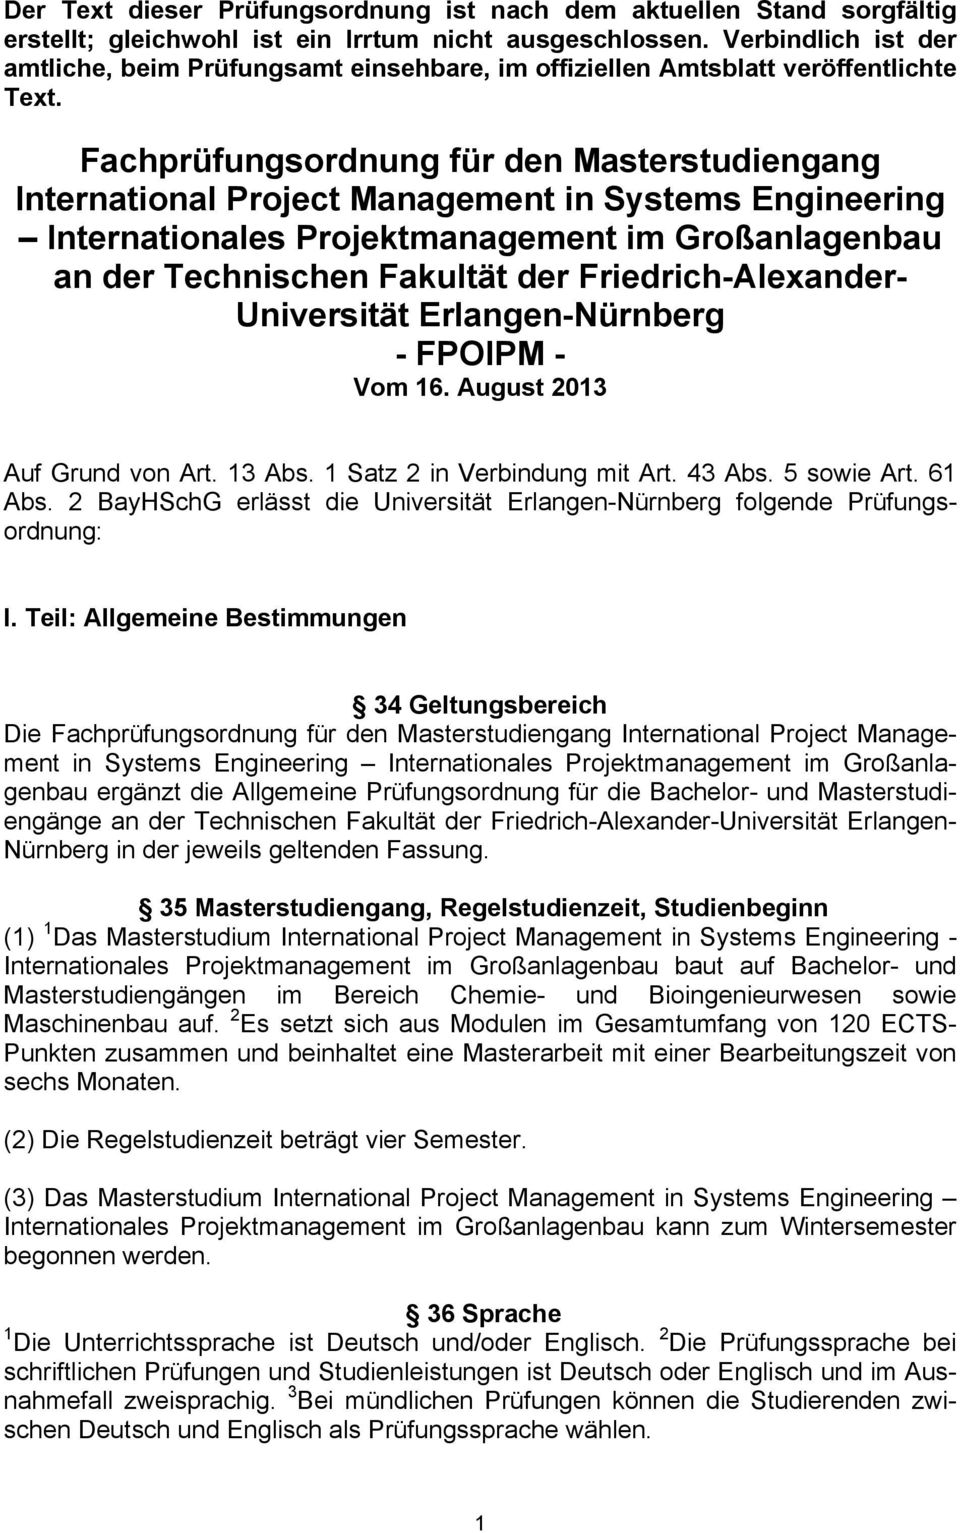 Fachprüfungsordnung für den Masterstudiengang International Project Management in Systems Engineering Internationales Projektmanagement im Großanlagenbau an der Technischen Fakultät der